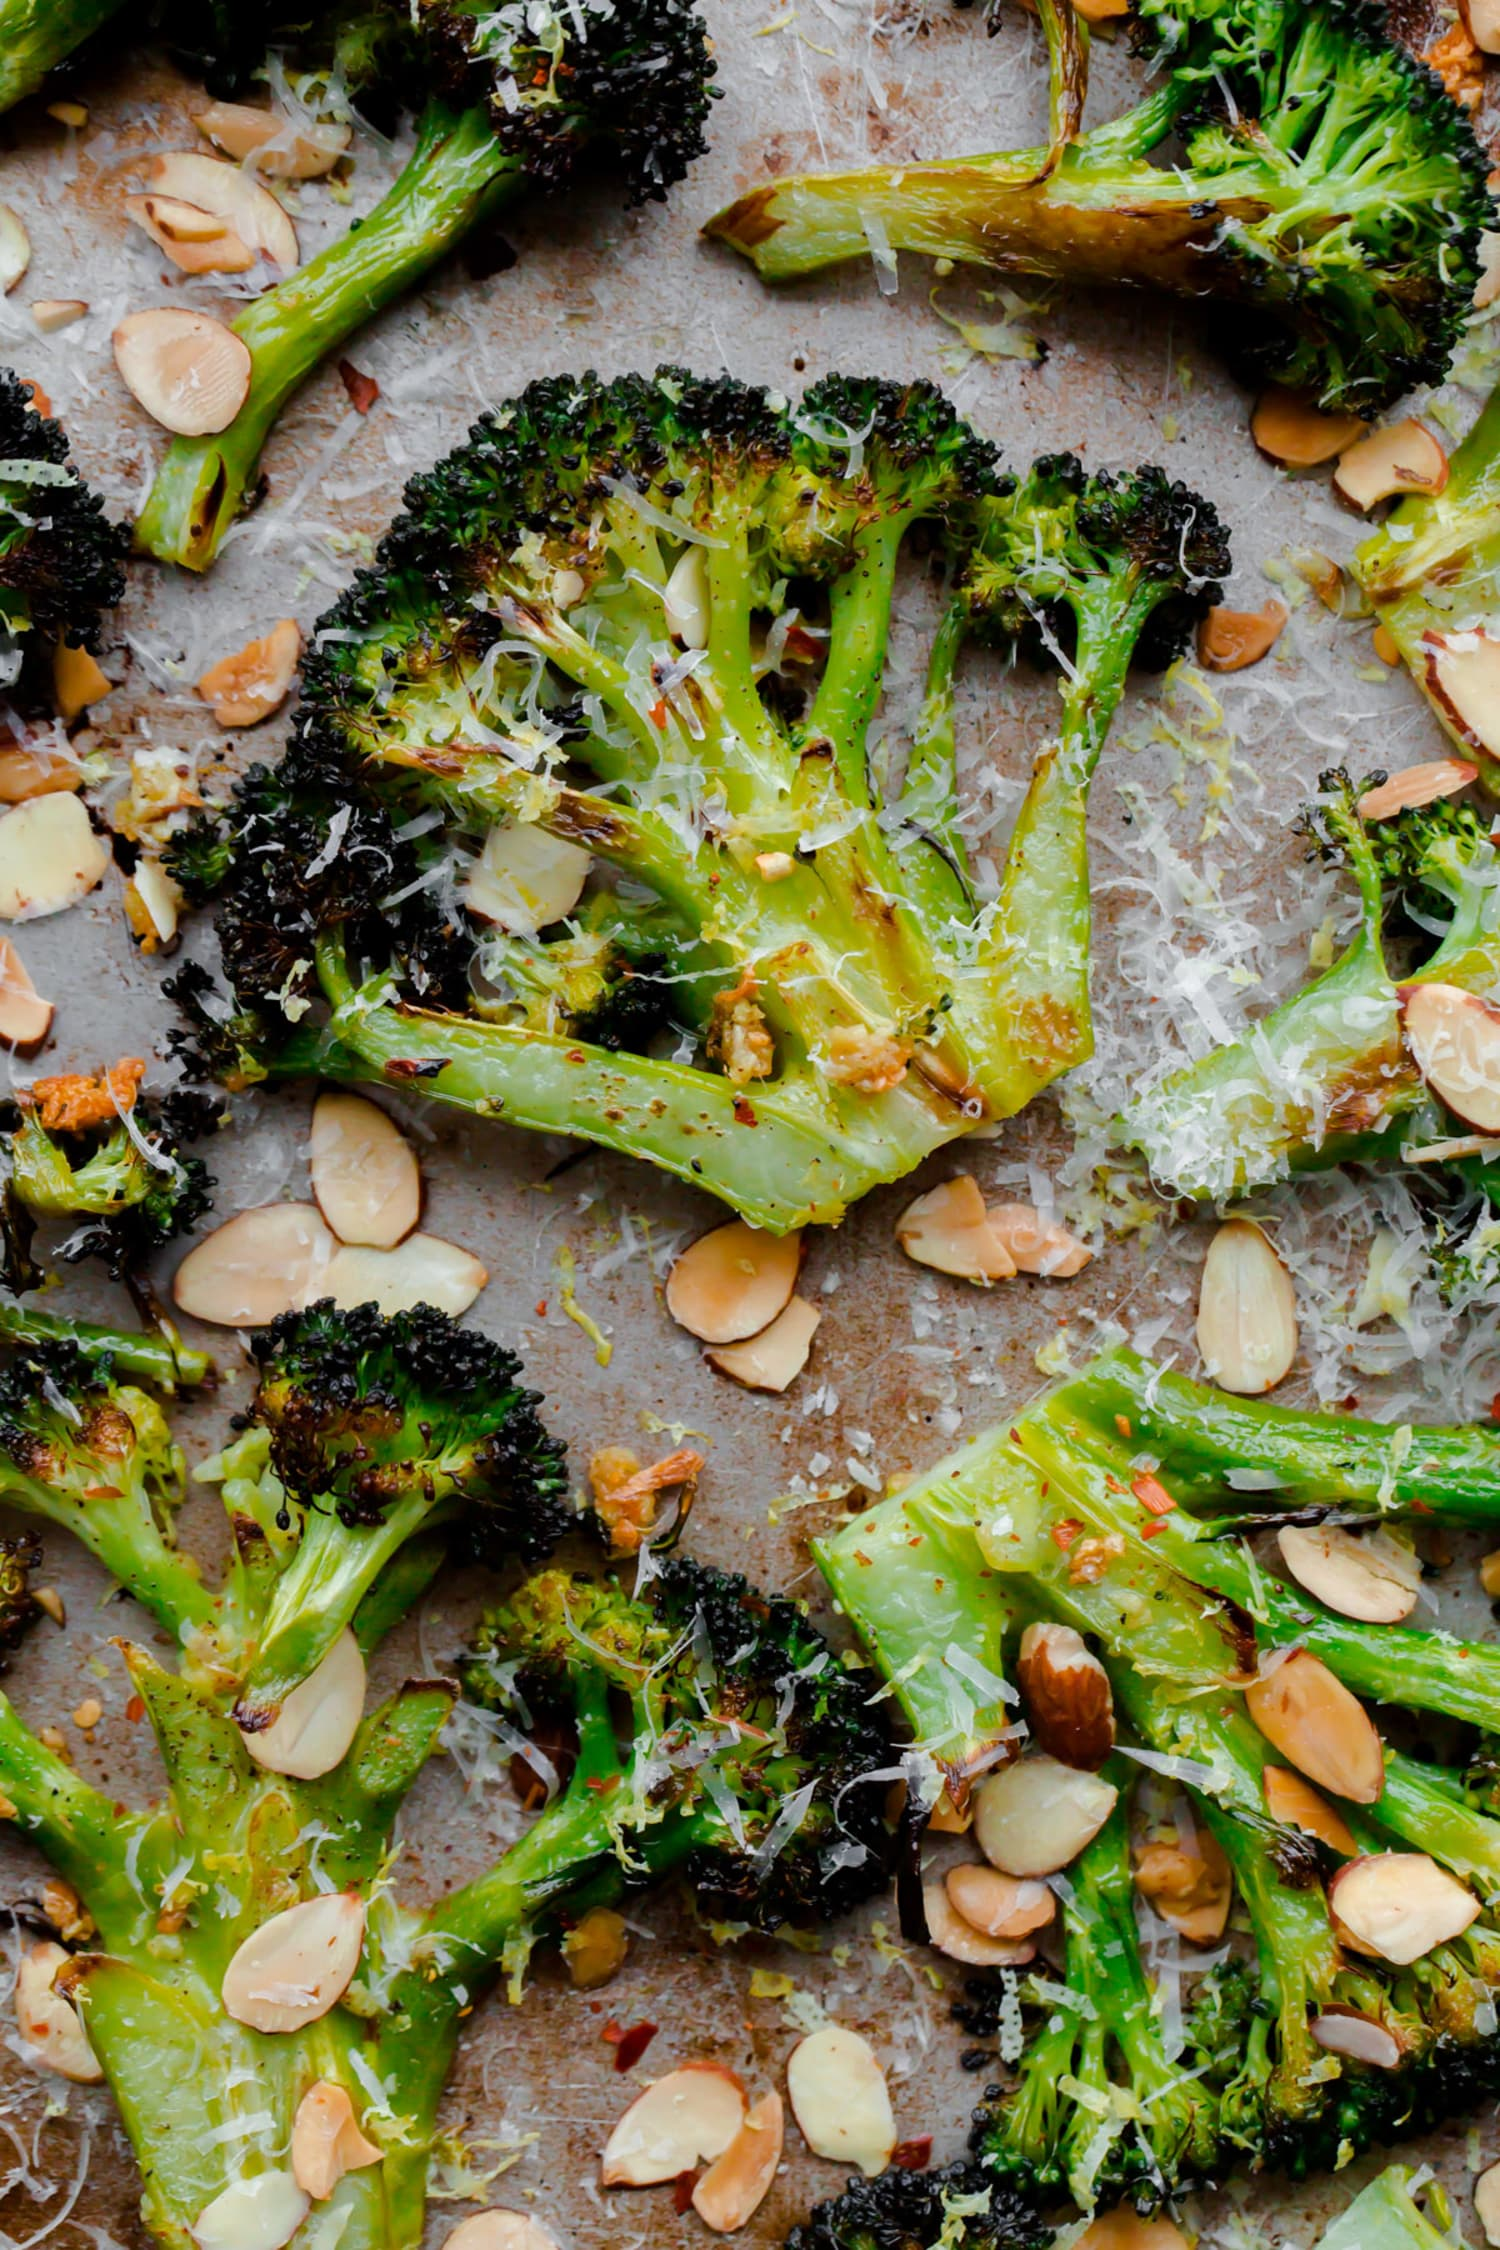 The Roasted Broccoli Recipe That Will Impress the Biggest of Veggie-Haters